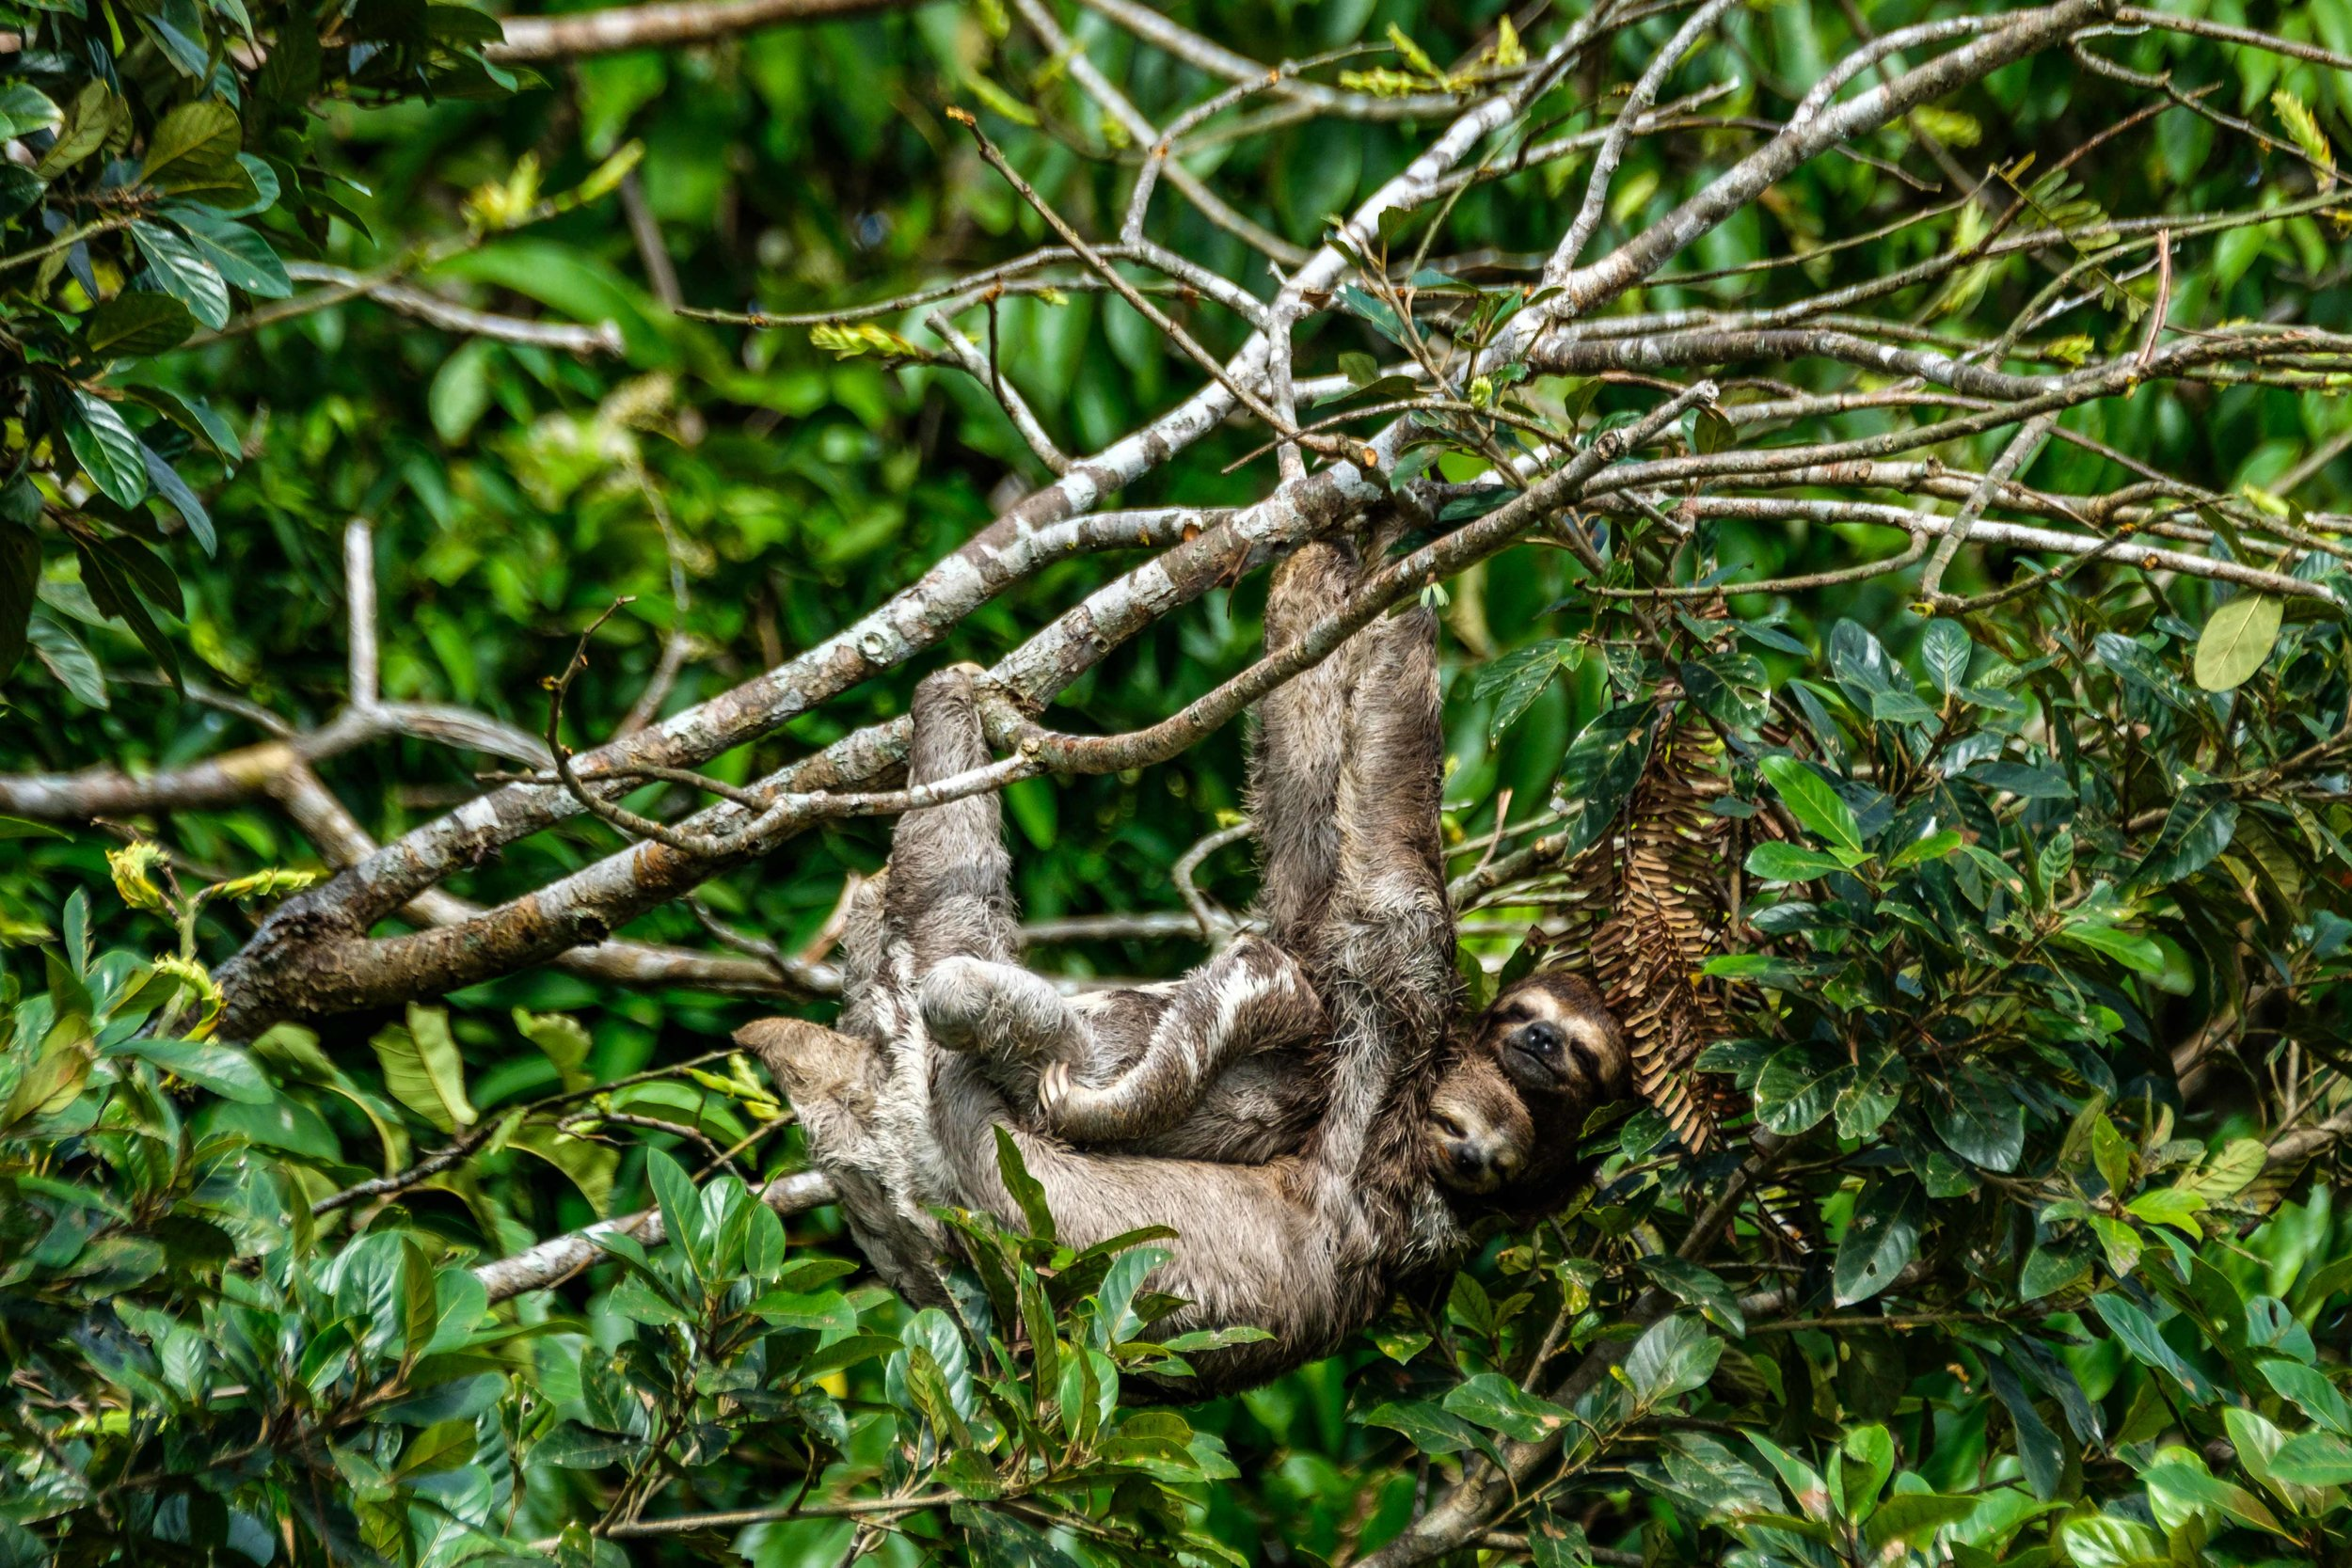 A three-toed sloth with a baby look back from high up in the tree.